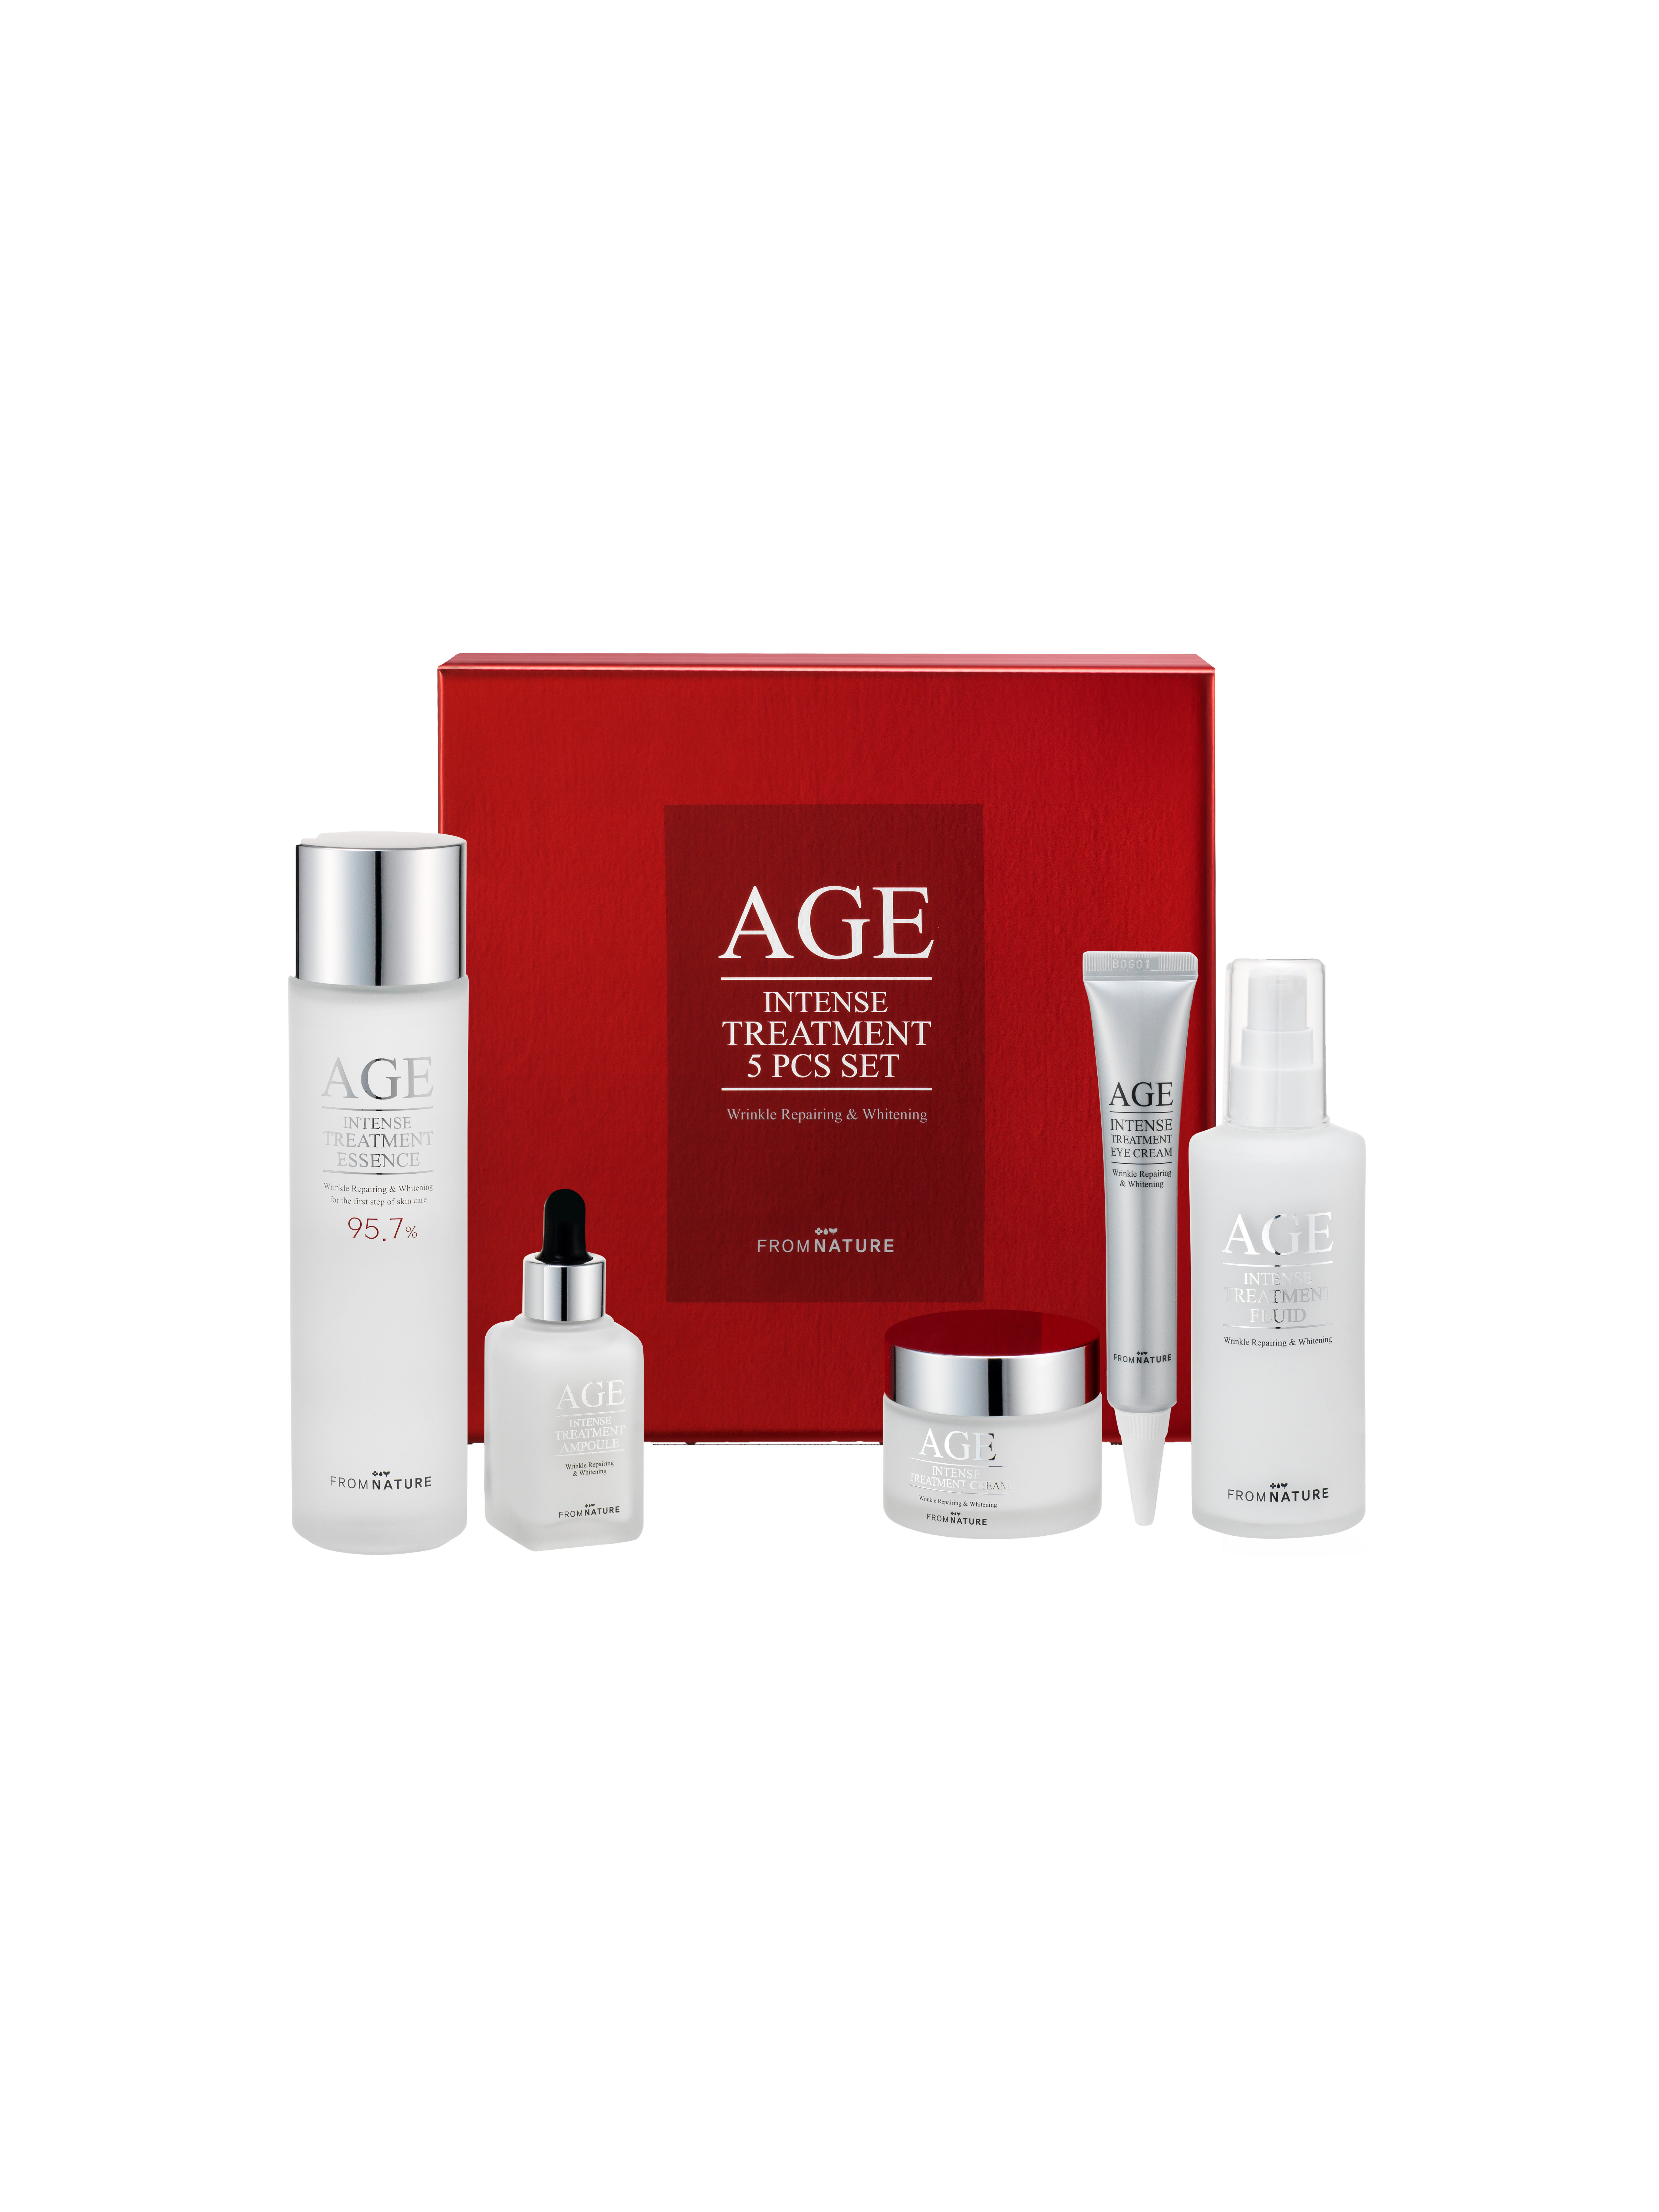 Age Intense Treatment Special 5 Item Set Limited Edition